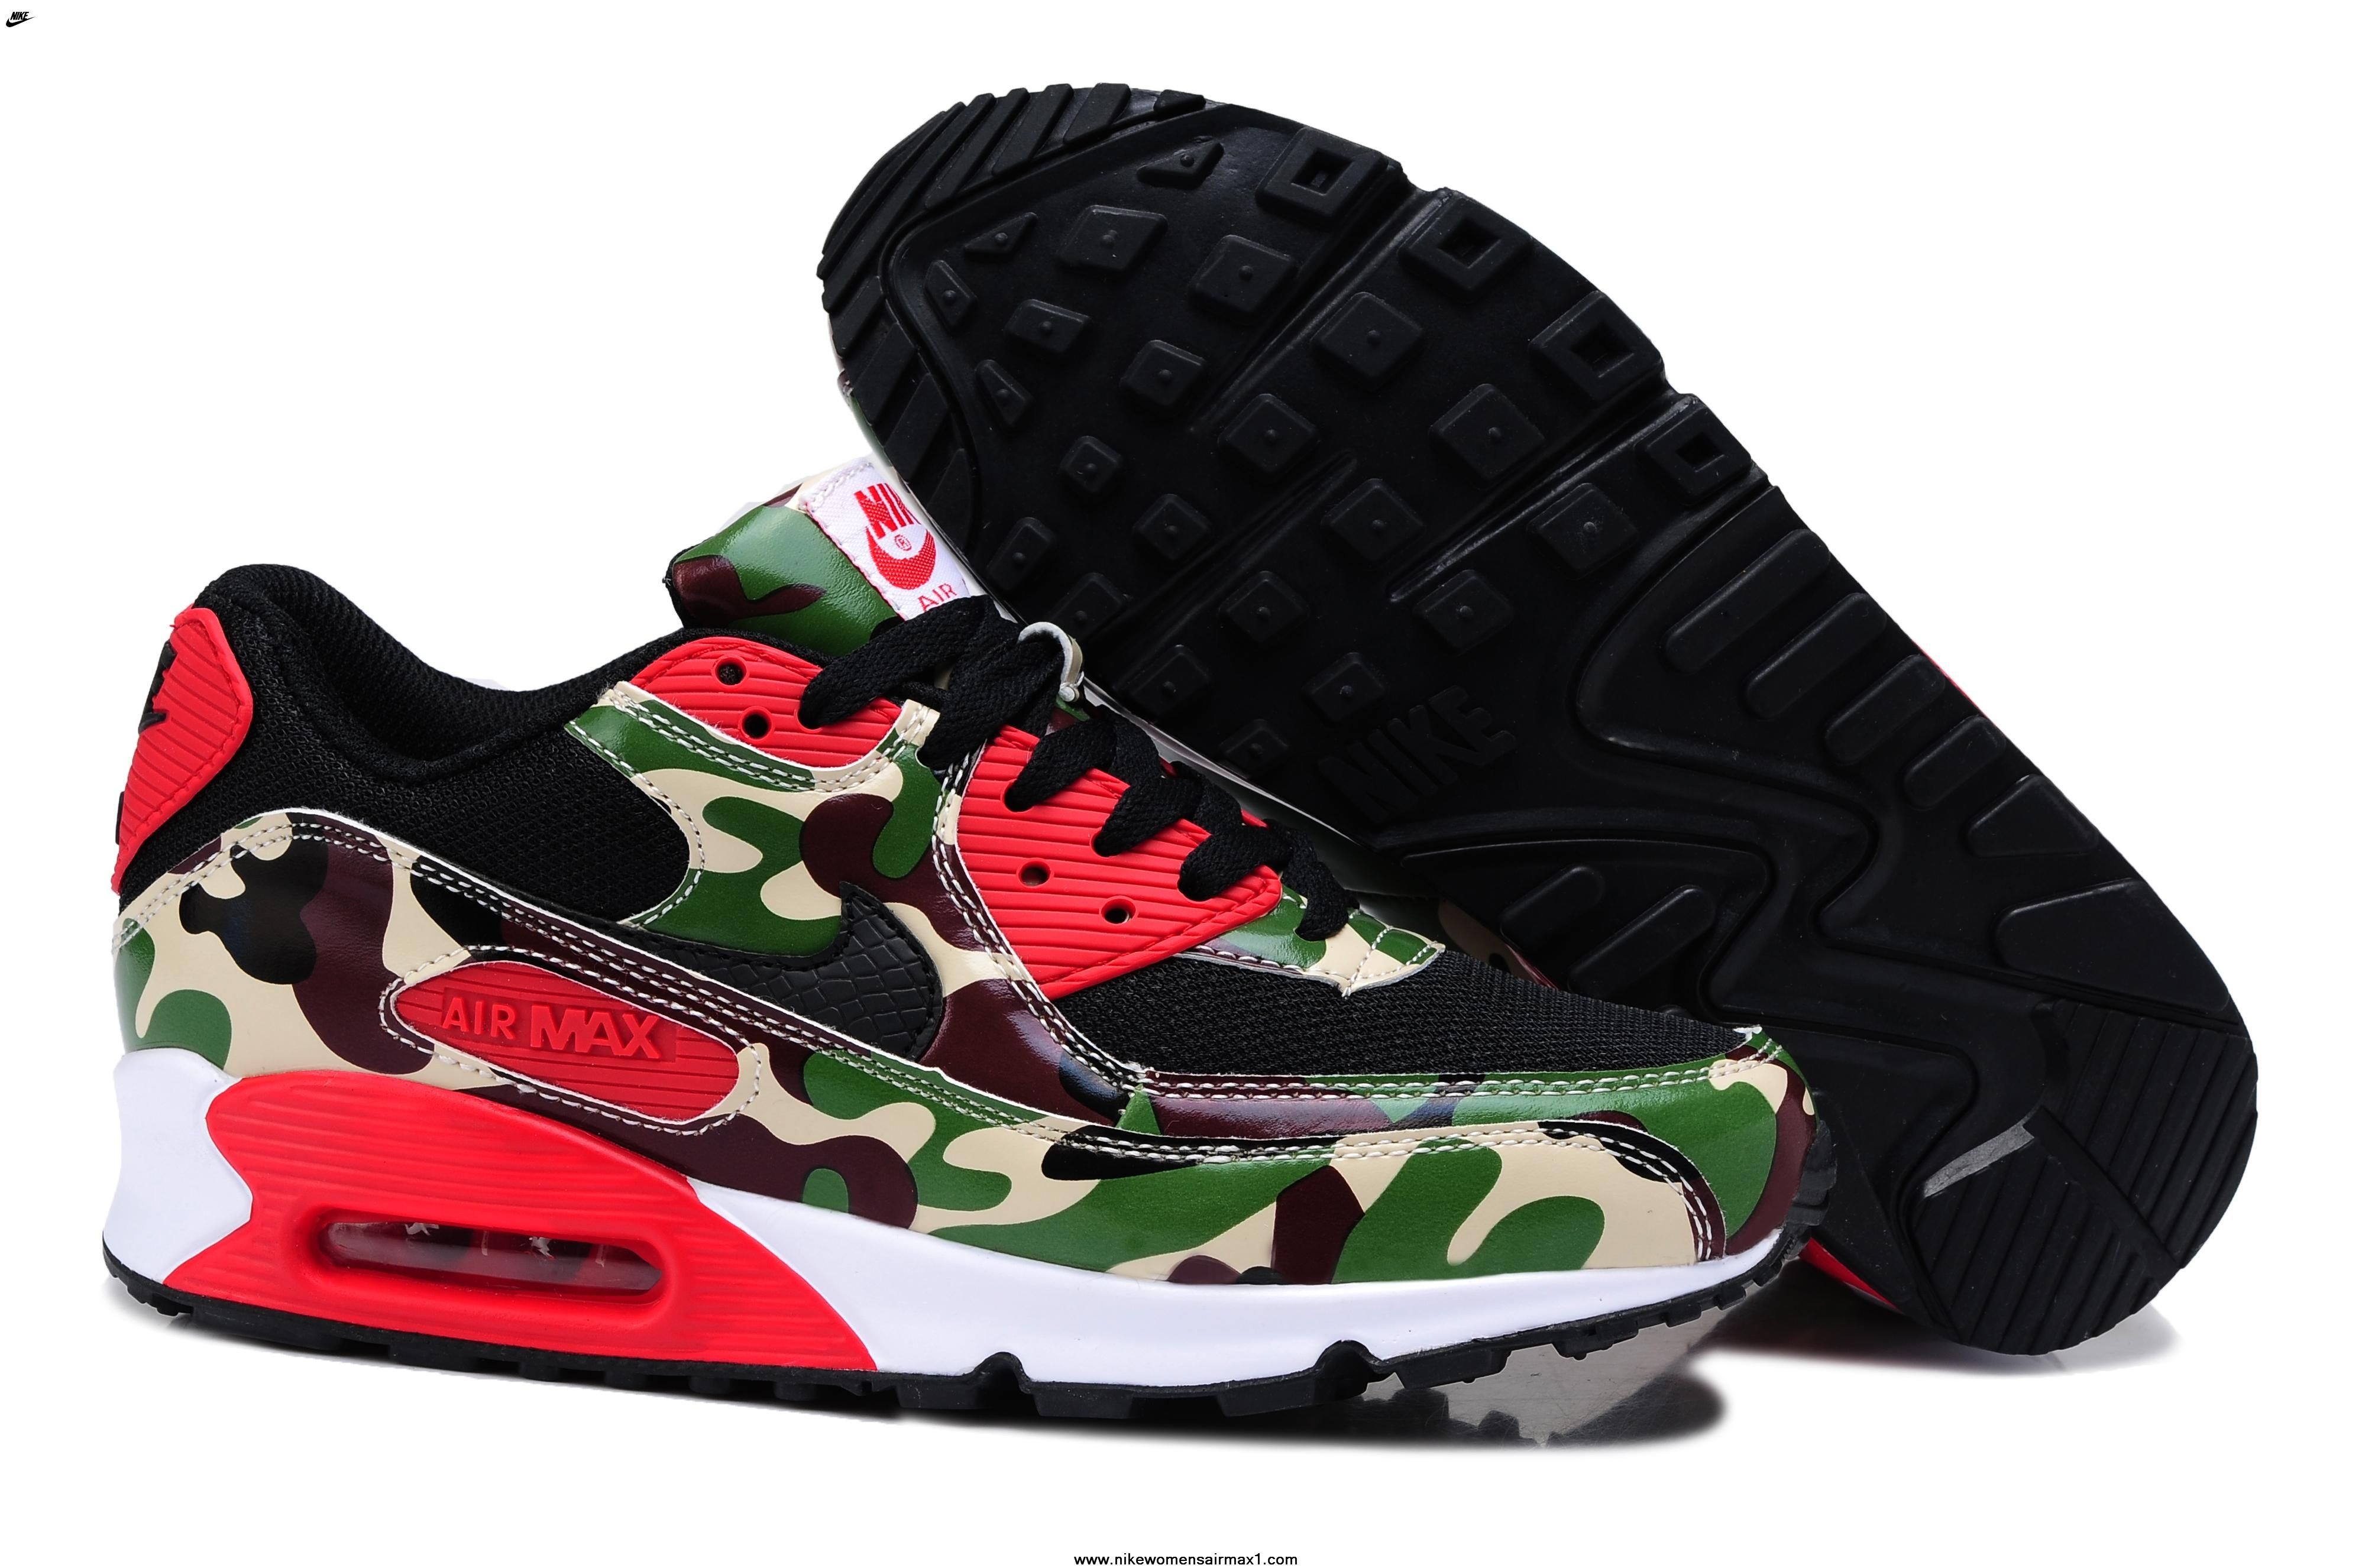 air max 90 camo infrared for sale